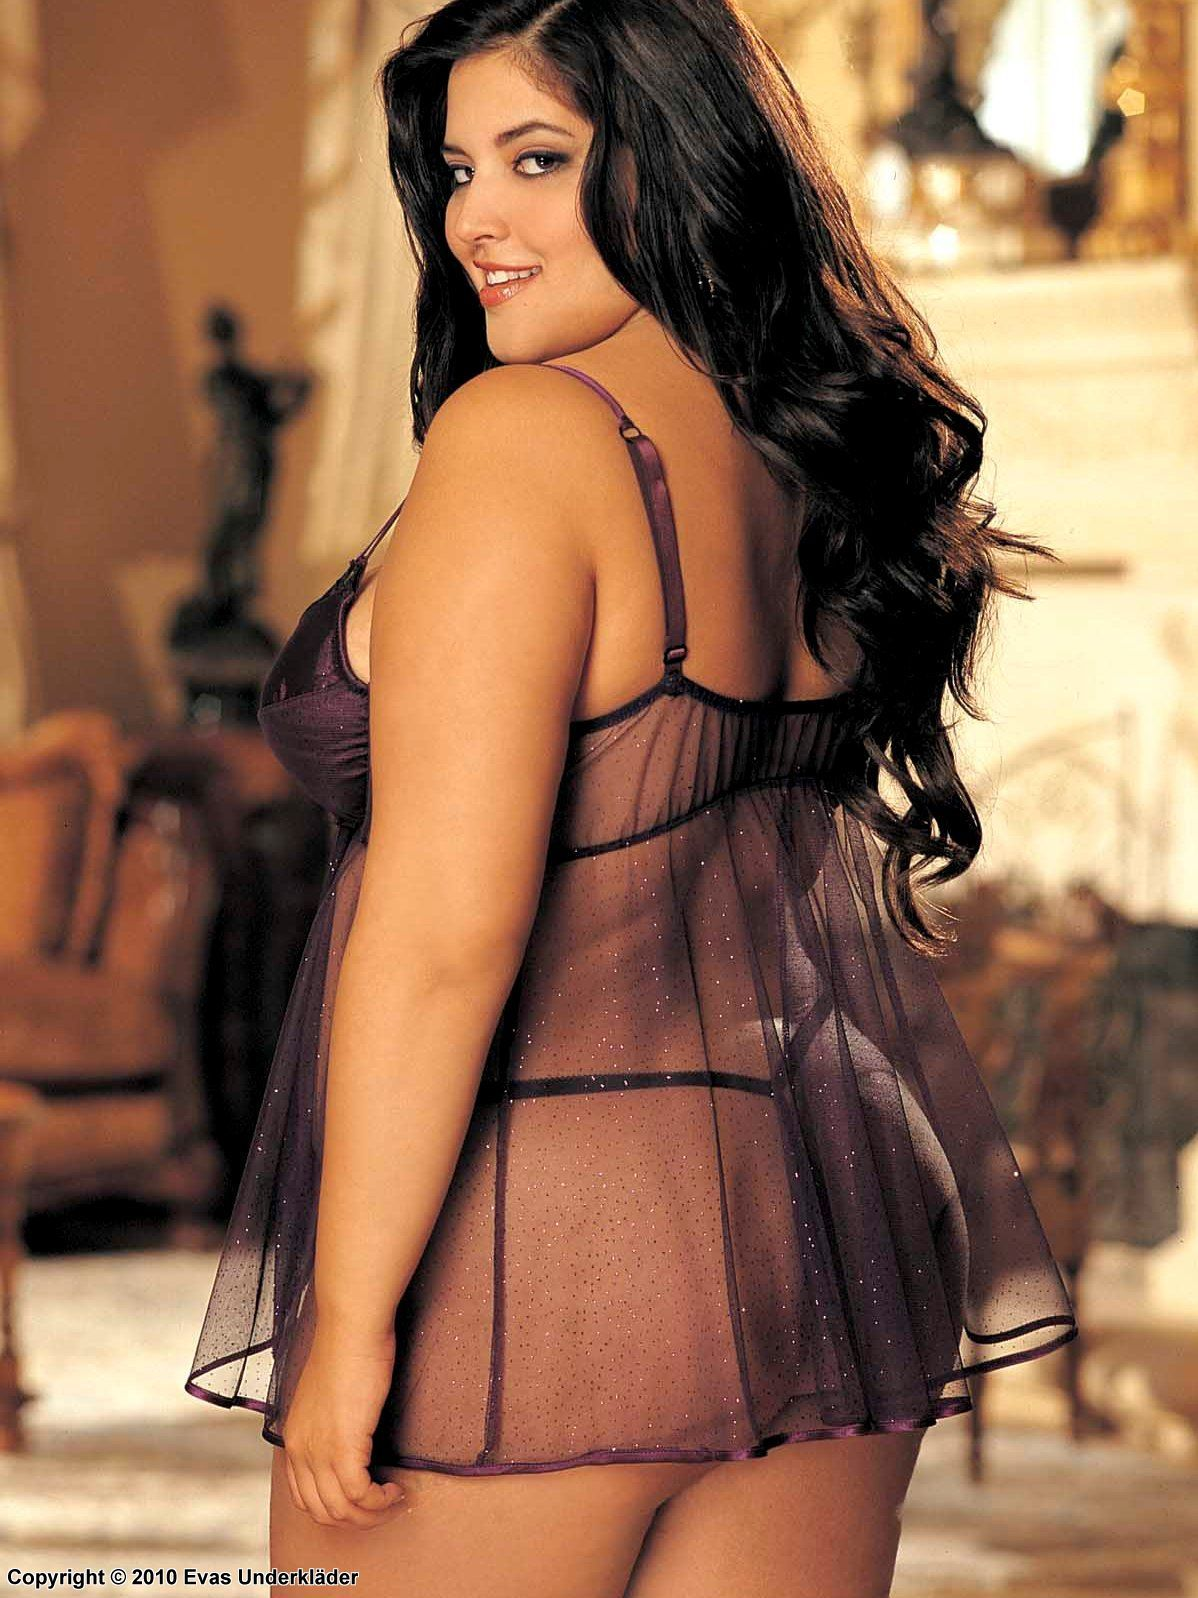 Plus size model denise bidot think, that